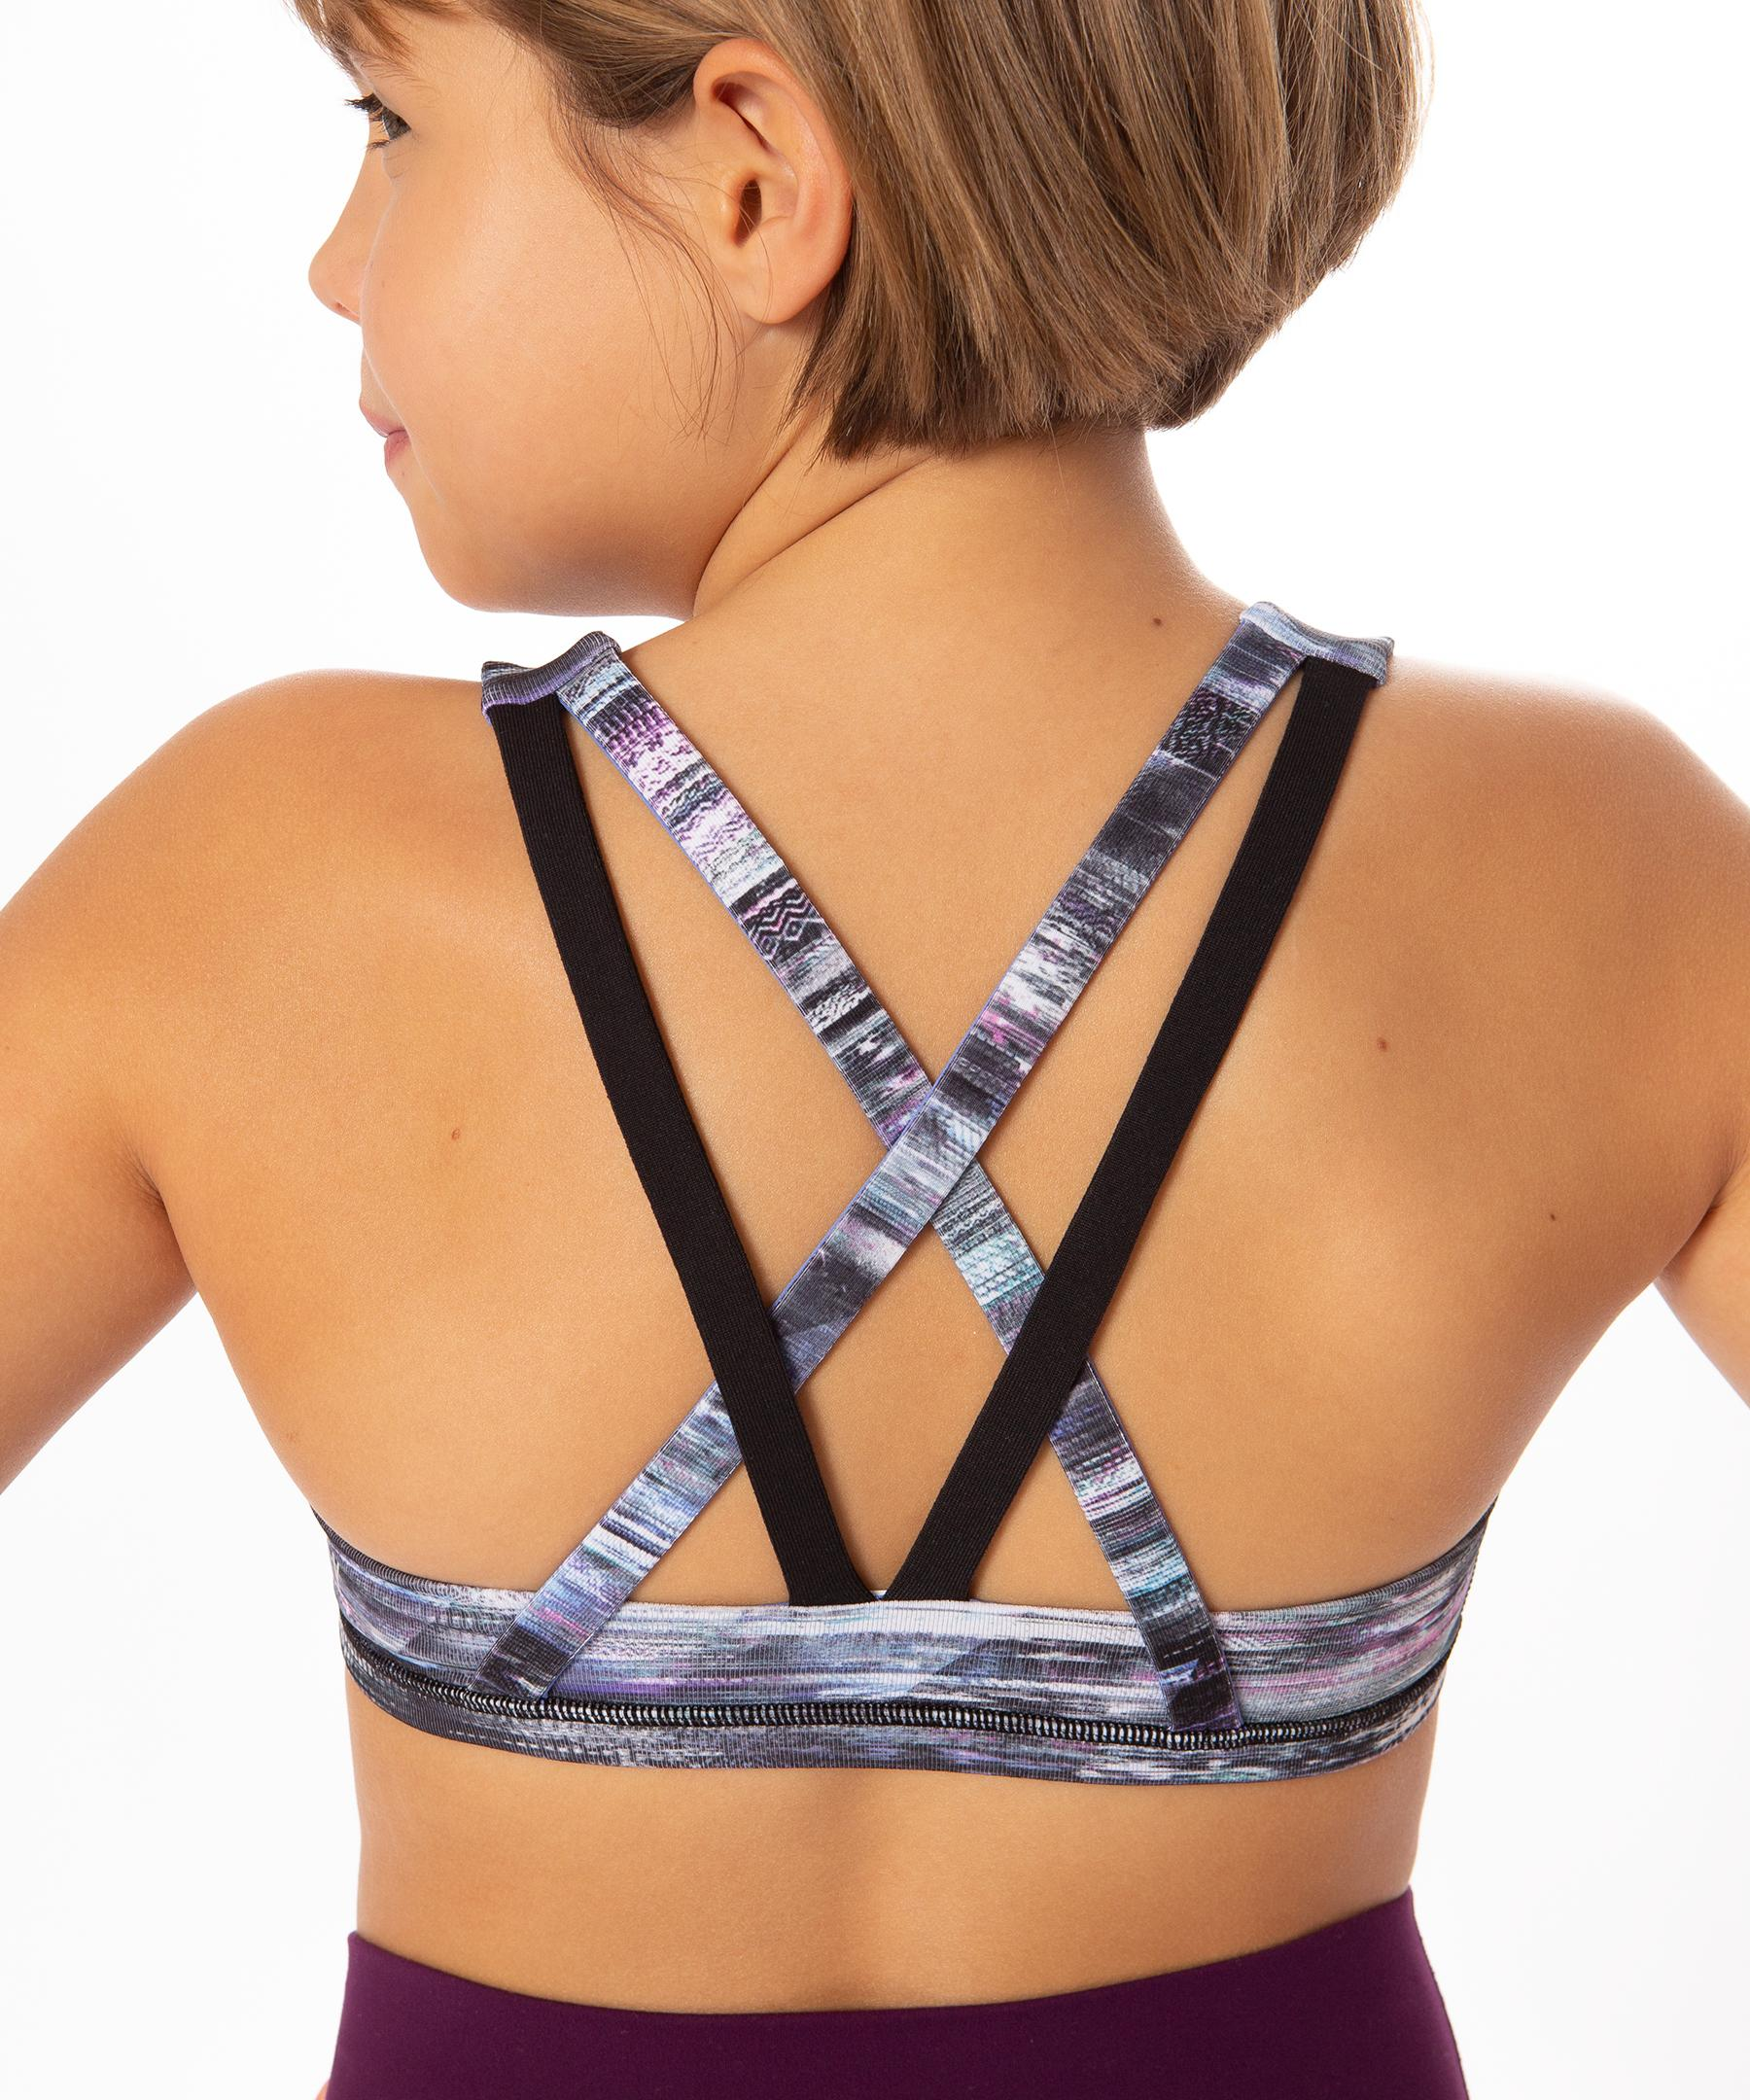 c5f3cfcc13 Lyst - lululemon athletica Complete Focus Bra  reversible - Girls in ...